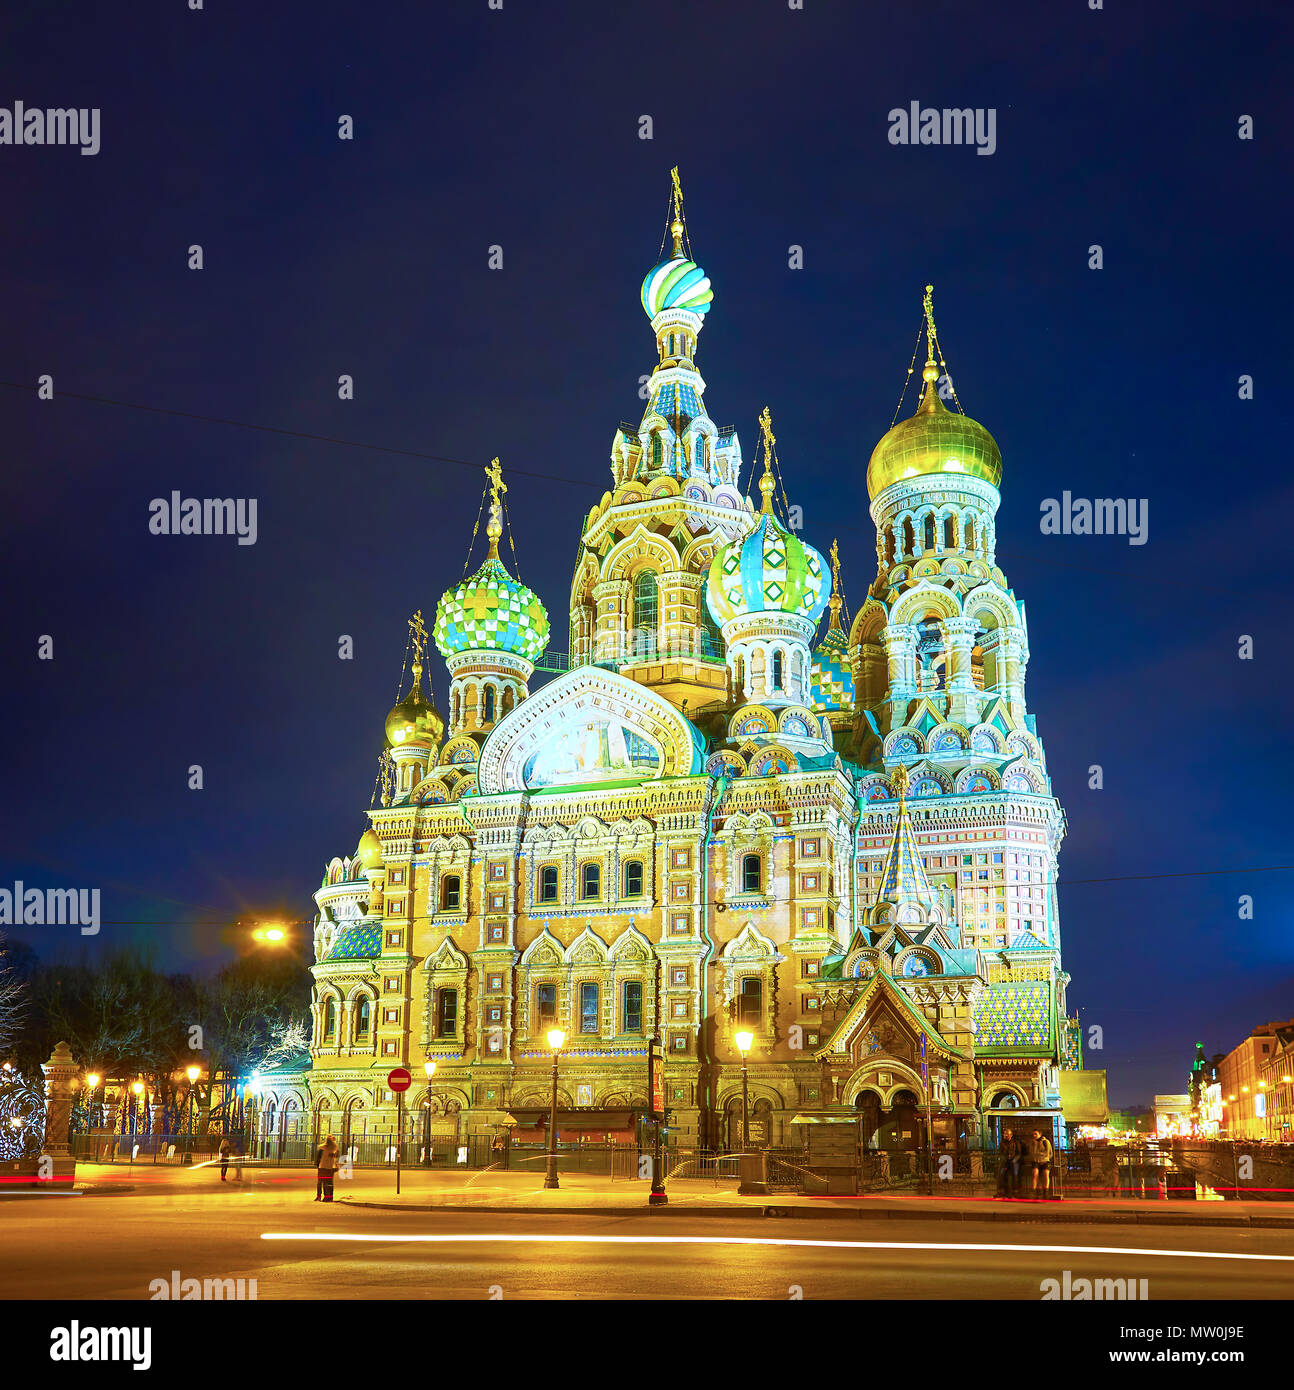 SAINT PETERSBURG, RUSSIA - APRIL 26, 2015: The beautiful Church of the Savior on Blood with beautiful city illumination, on April 26 in Saint Petersbu - Stock Image